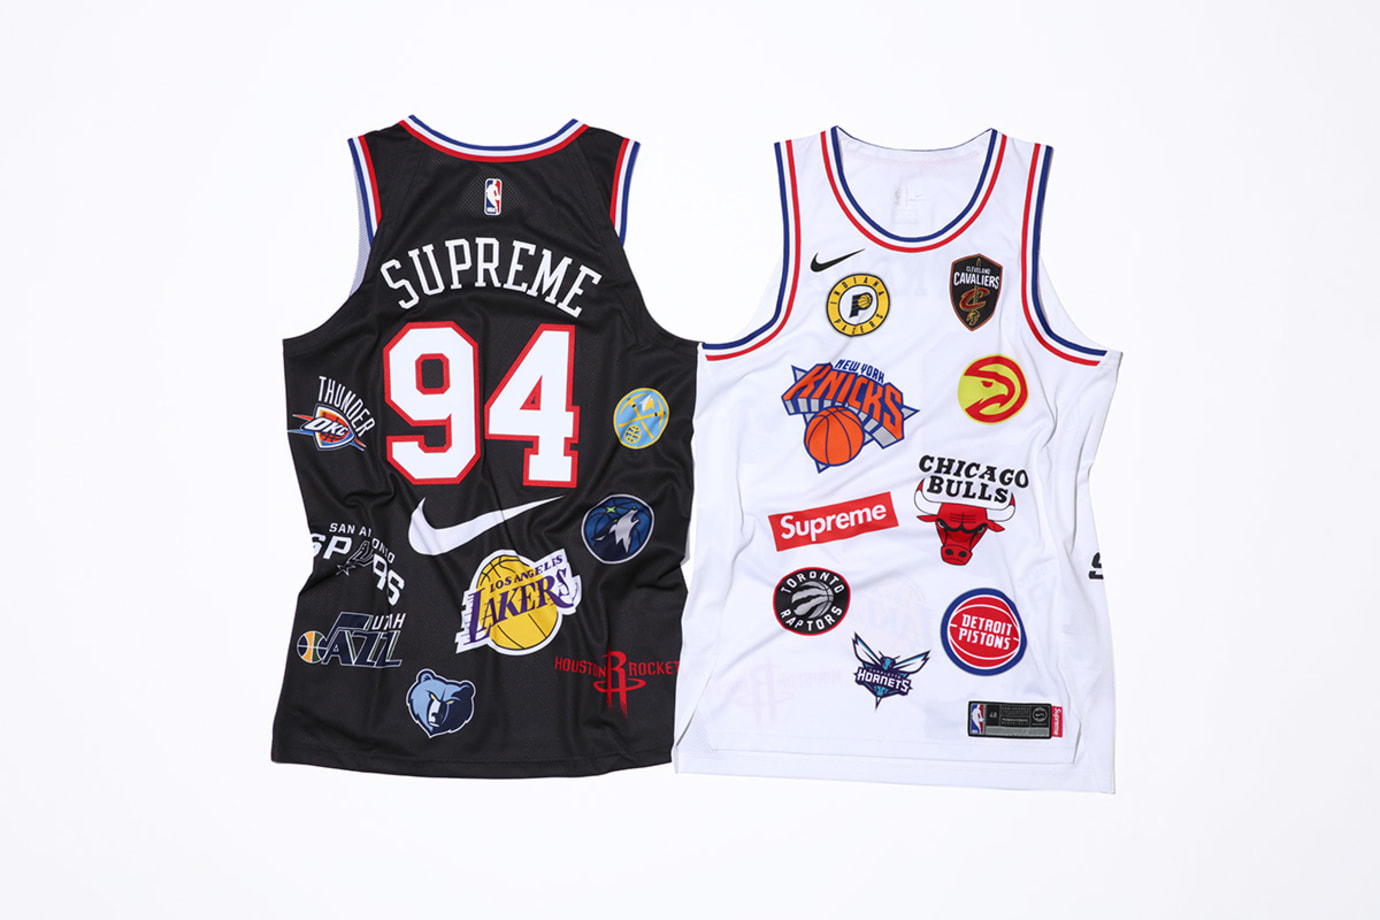 Supreme x Nike x NBA Jerseys (Back)